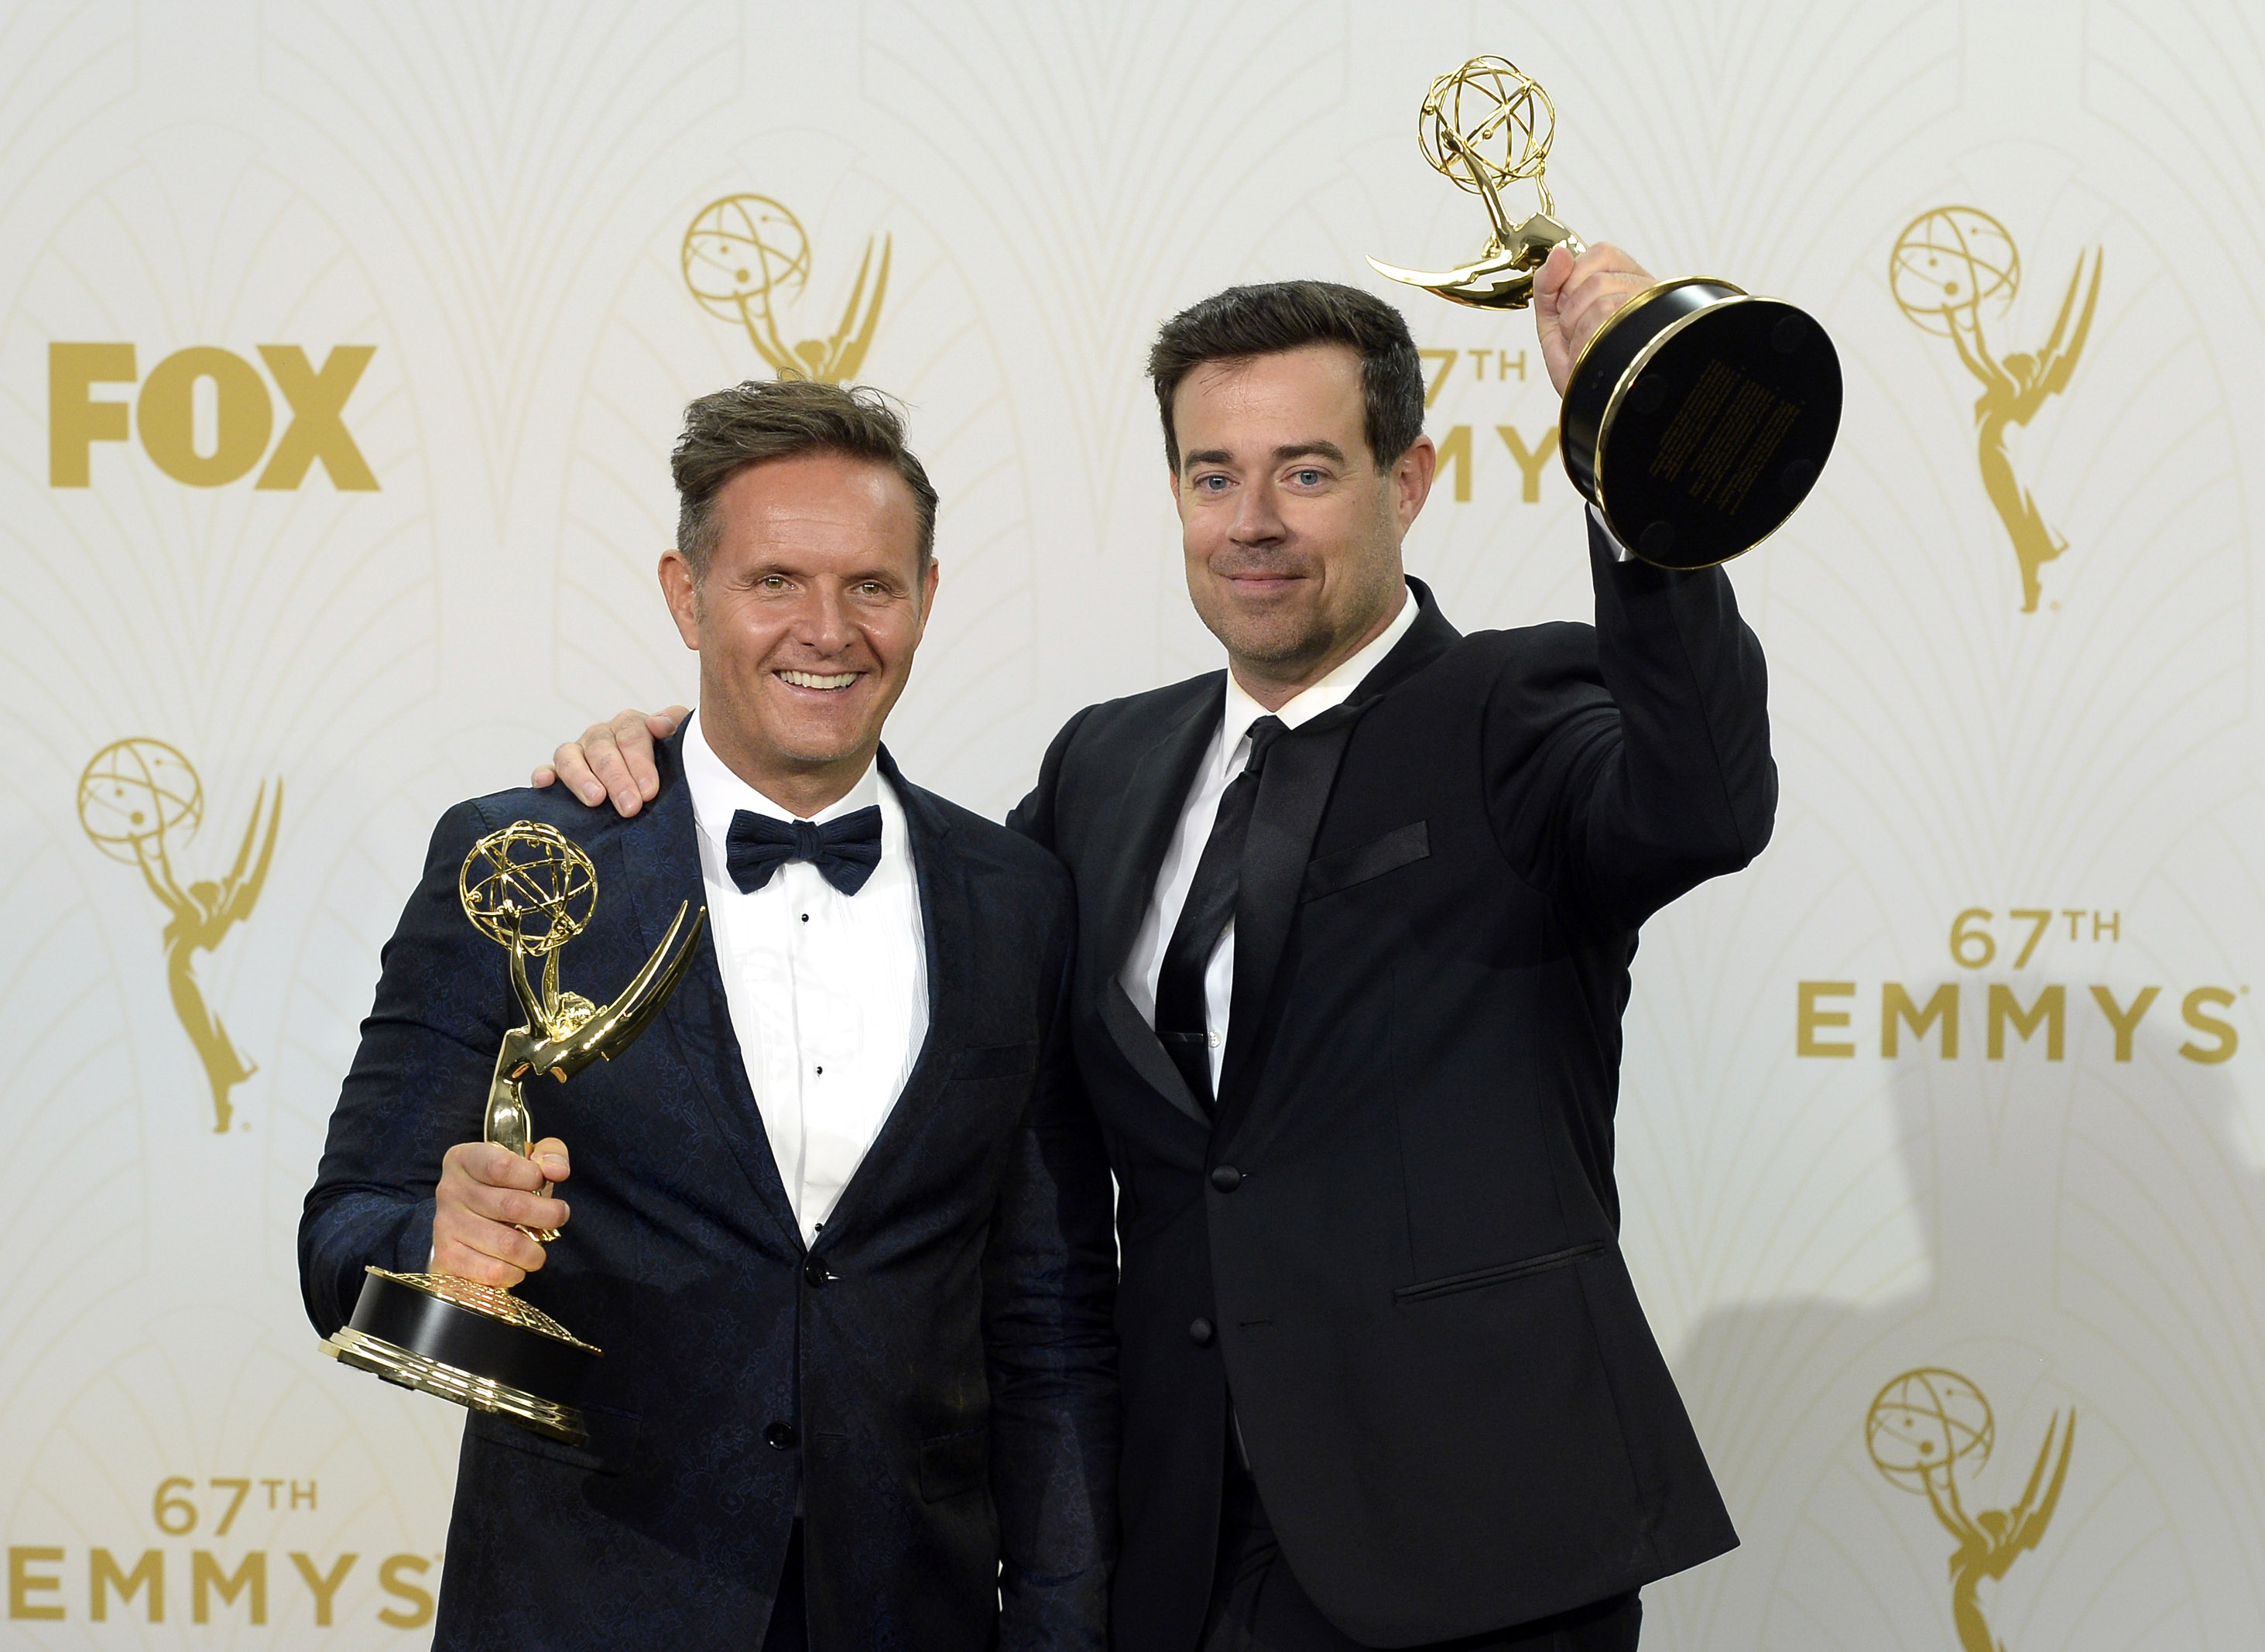 LOS ANGELES, CA - SEPTEMBER 20:  Producer Mark Burnett (L) and TV personality Carson Daly, winners of Outstanding Reality-Competition Program for 'The Voice', pose in the press room at the 67th Annual Primetime Emmy Awards at Microsoft Theater on September 20, 2015  in Los Angeles, California. (Photo by Kevork Djansezian/Getty Images)